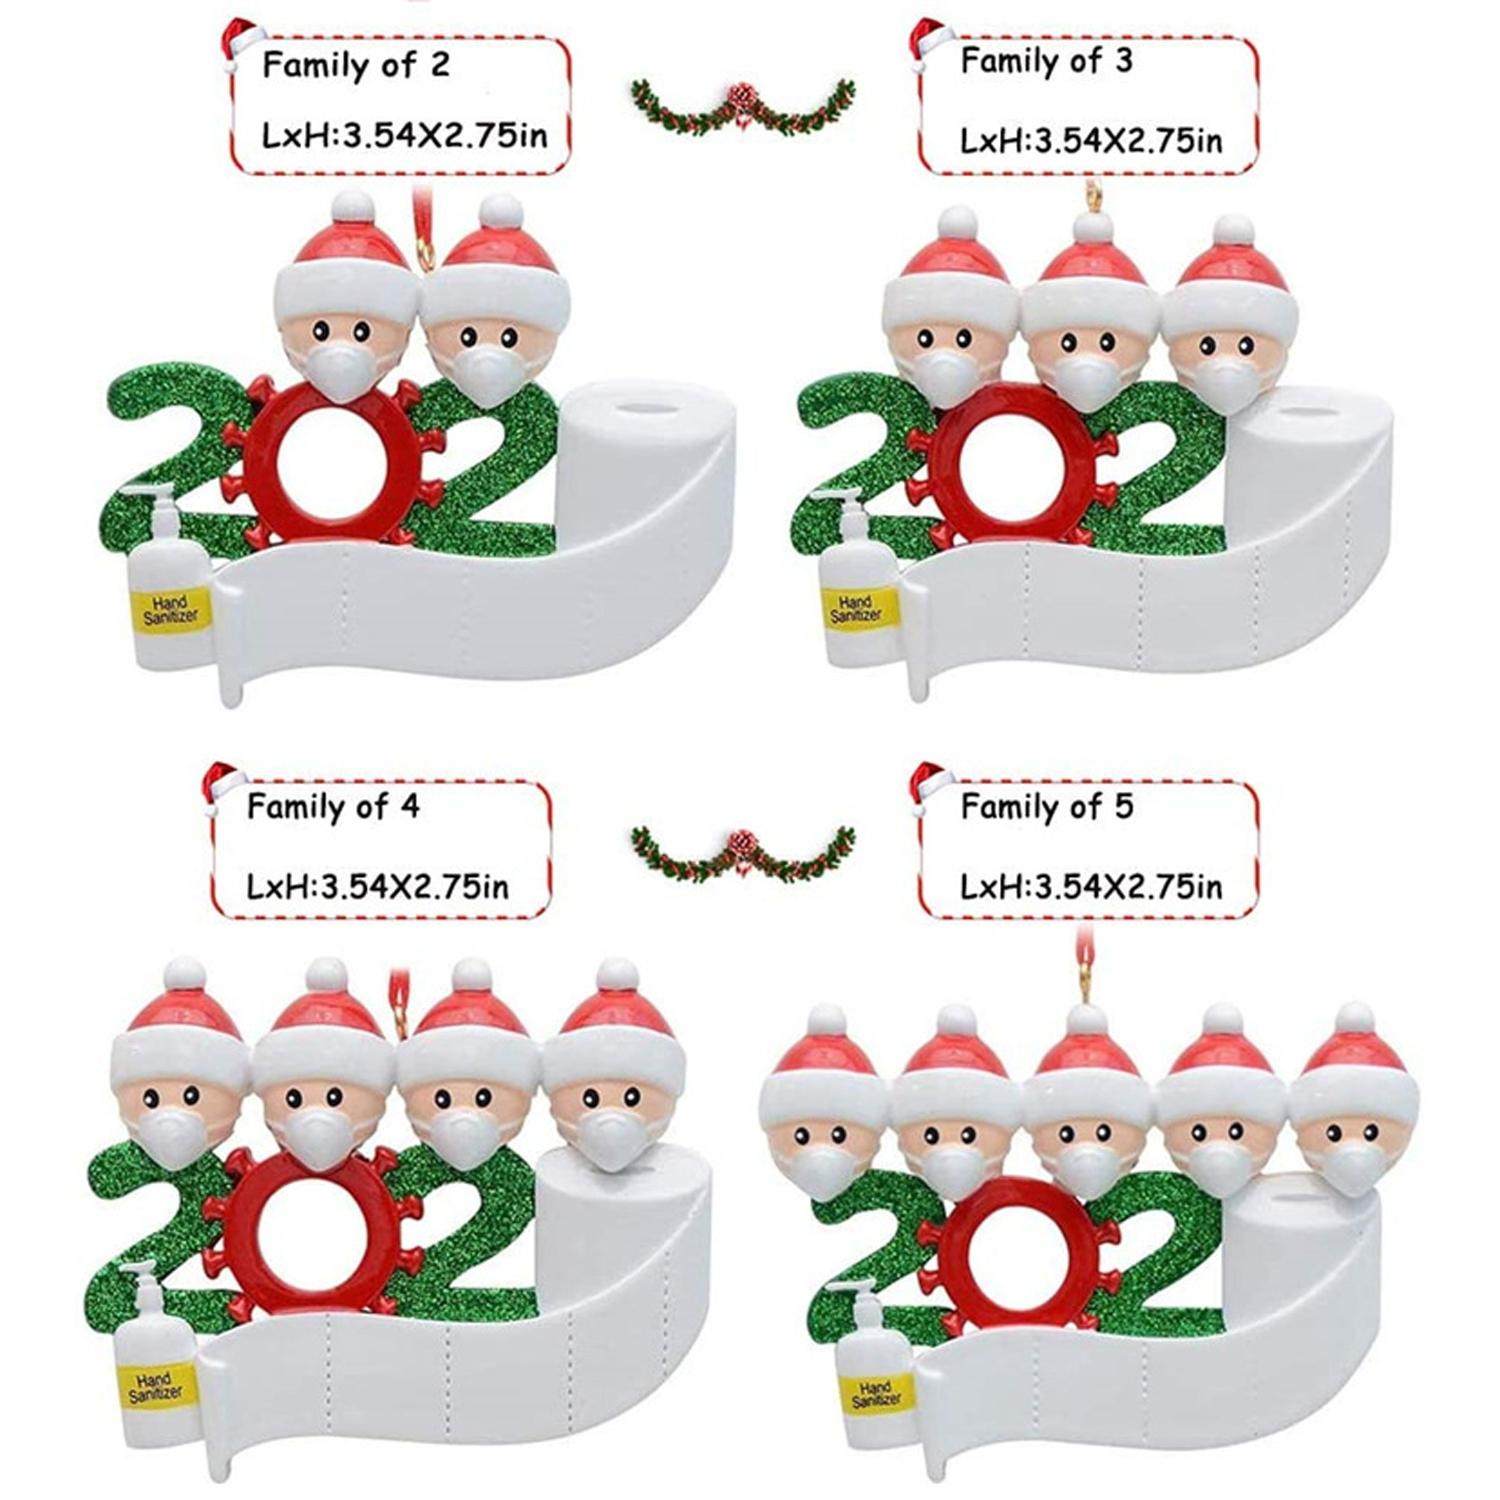 2020 Quarantine Personalized Ornaments Survivor Family Of 2 3 4 5 6 7 Diy Names With Face Masks Hand Sanitized Christmas Ornament Christmas Decorations On Sale Christmas Decorations On Sale Online From Solars 0 91 Dhgate Com